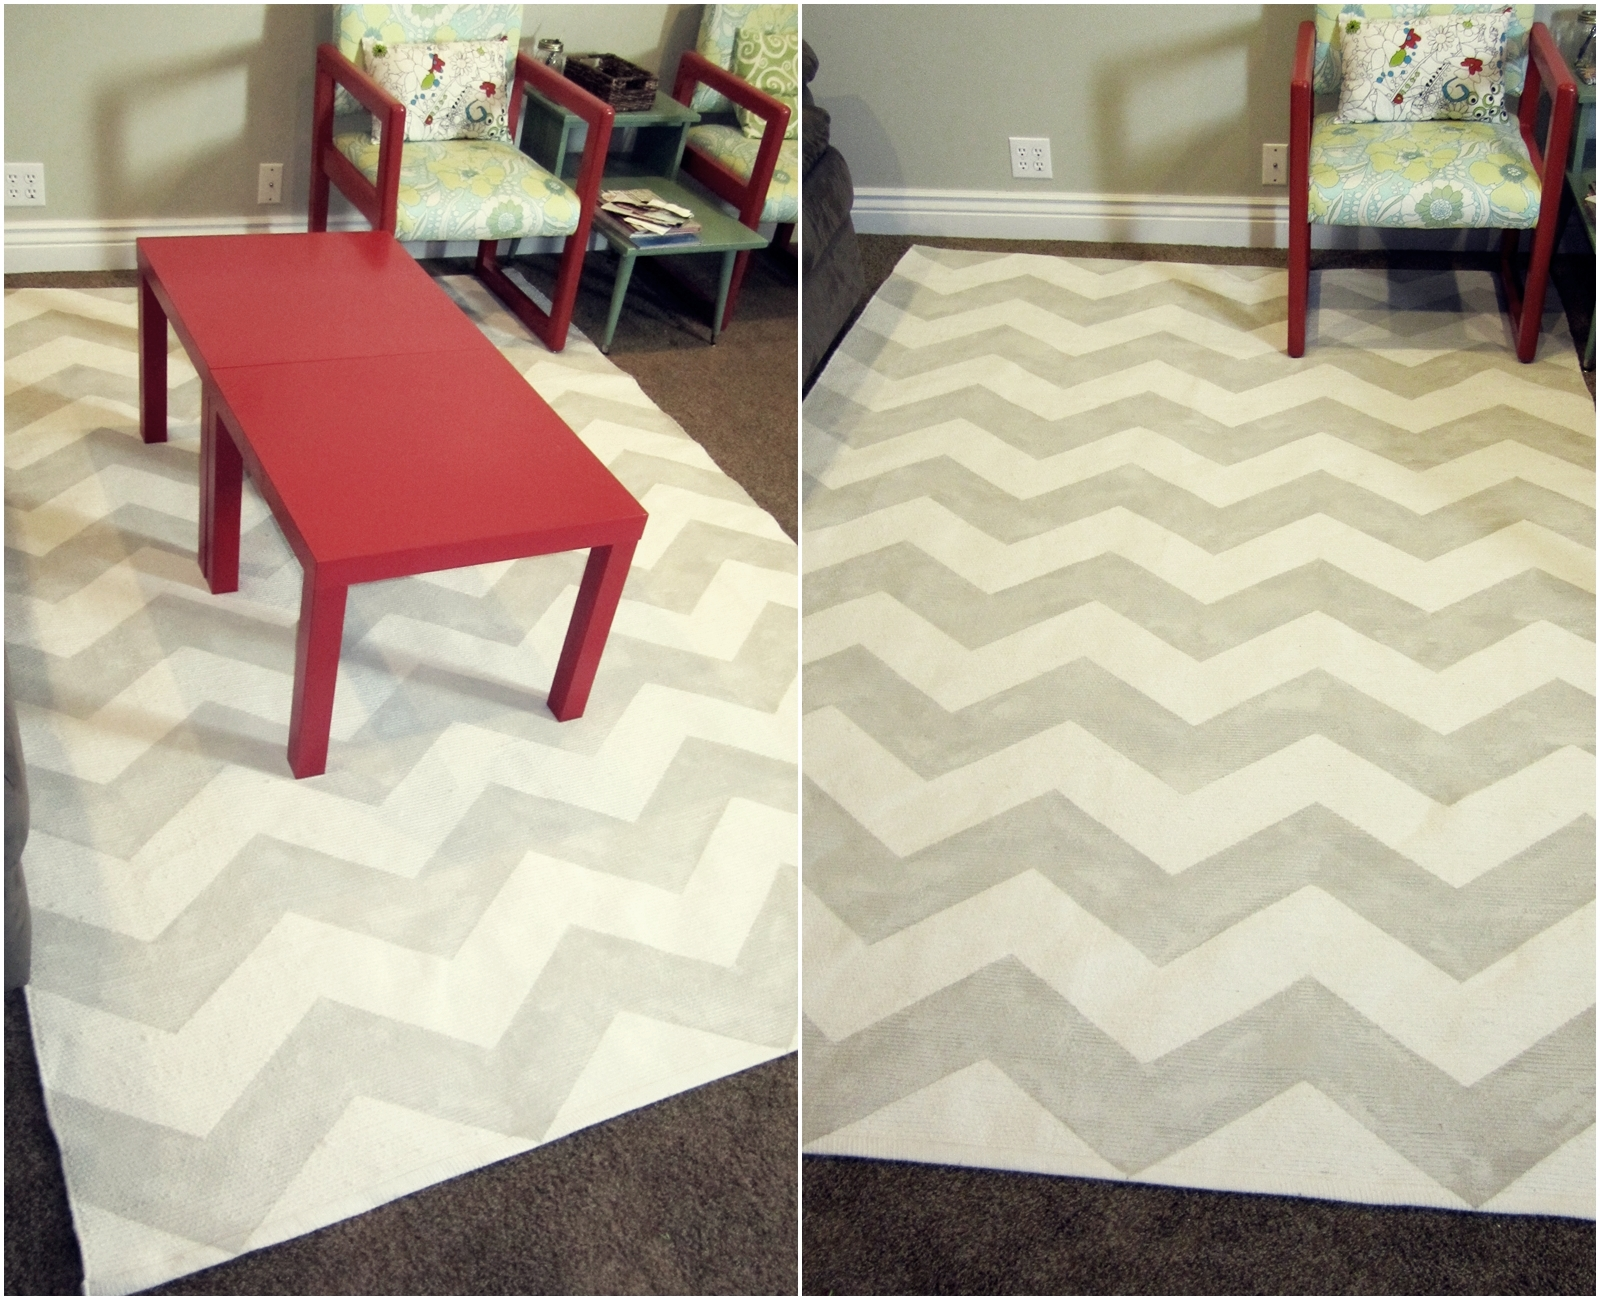 smartgirlstyle how to paint a rug (chevron) -